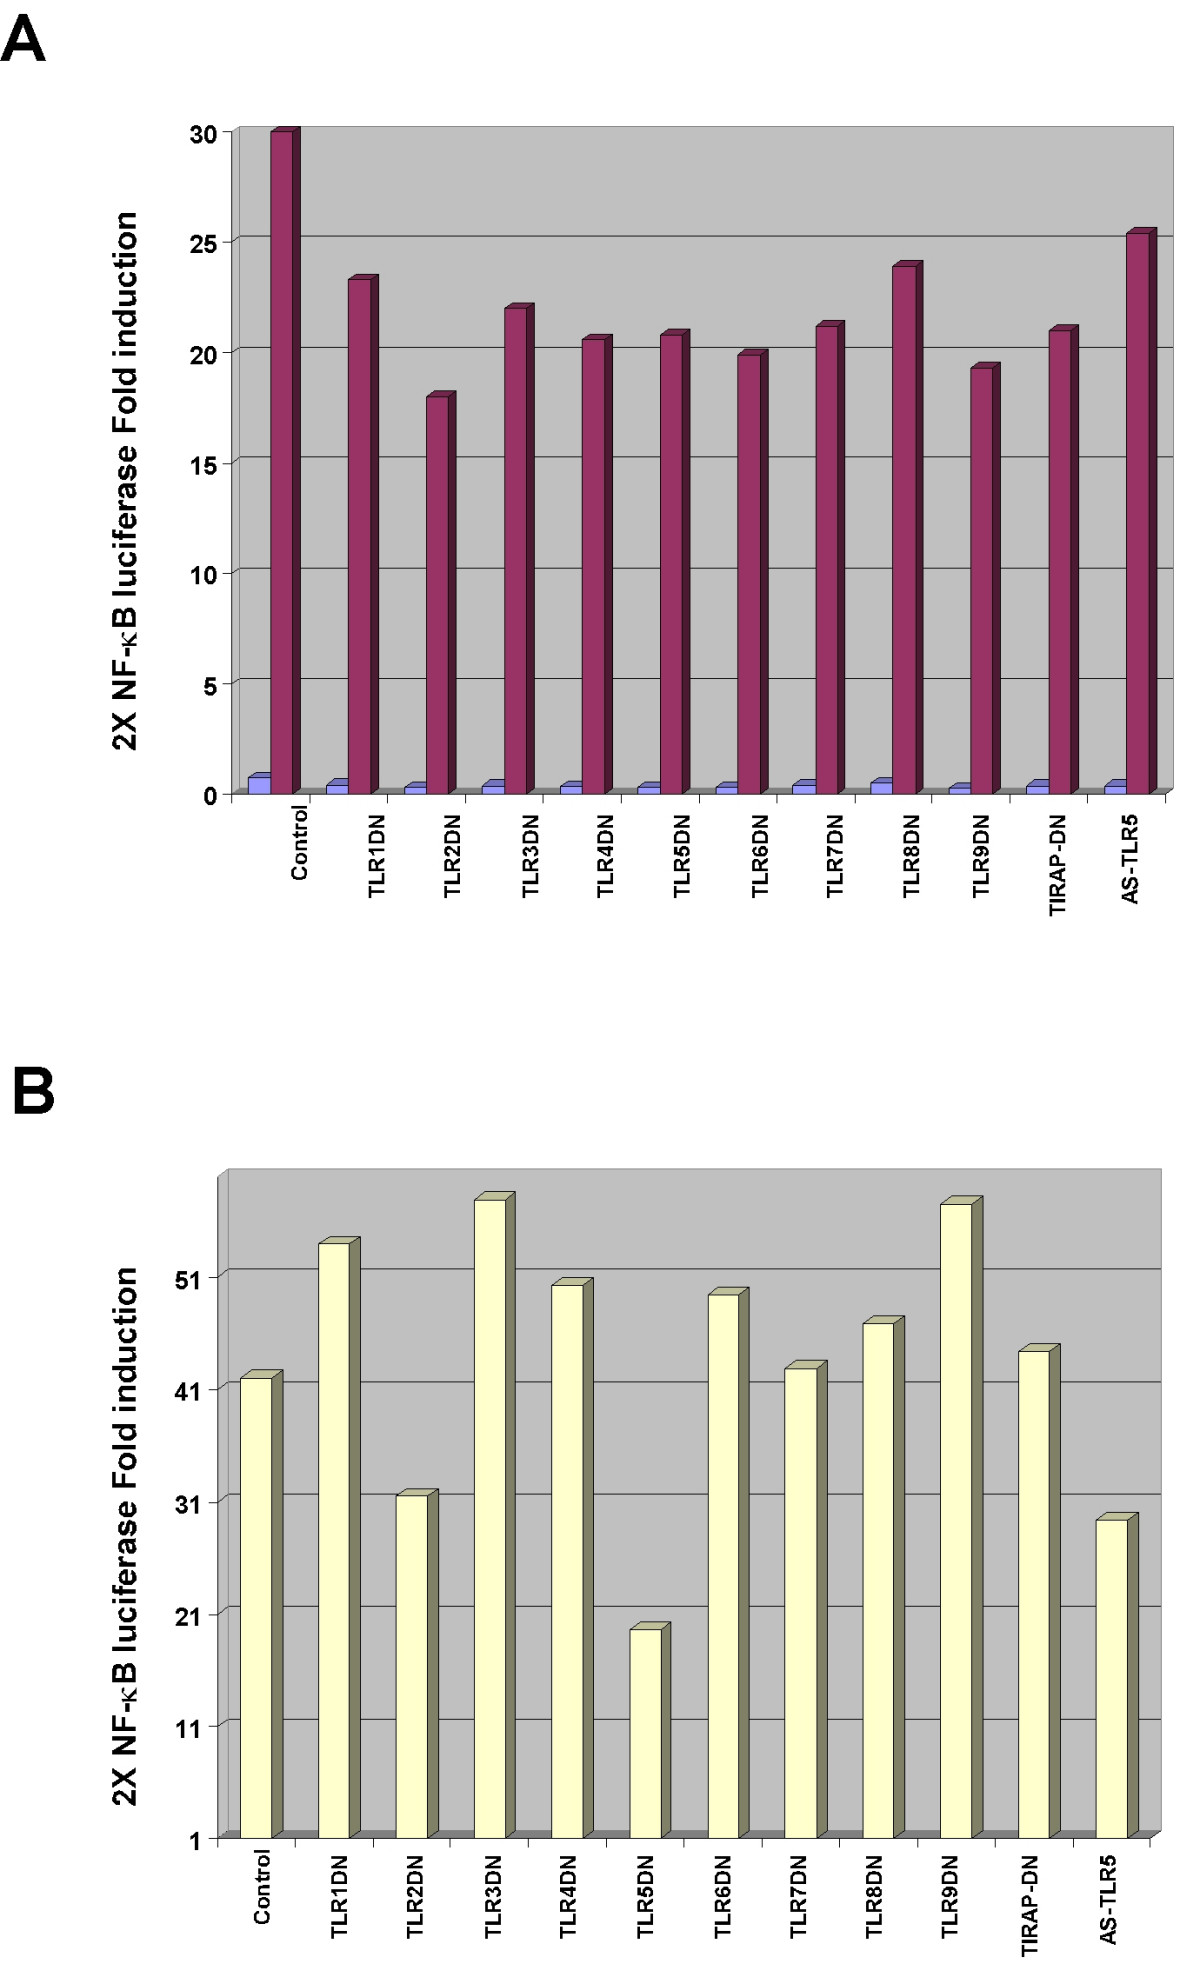 http://static-content.springer.com/image/art%3A10.1186%2F1471-2180-4-33/MediaObjects/12866_2004_Article_131_Fig8_HTML.jpg